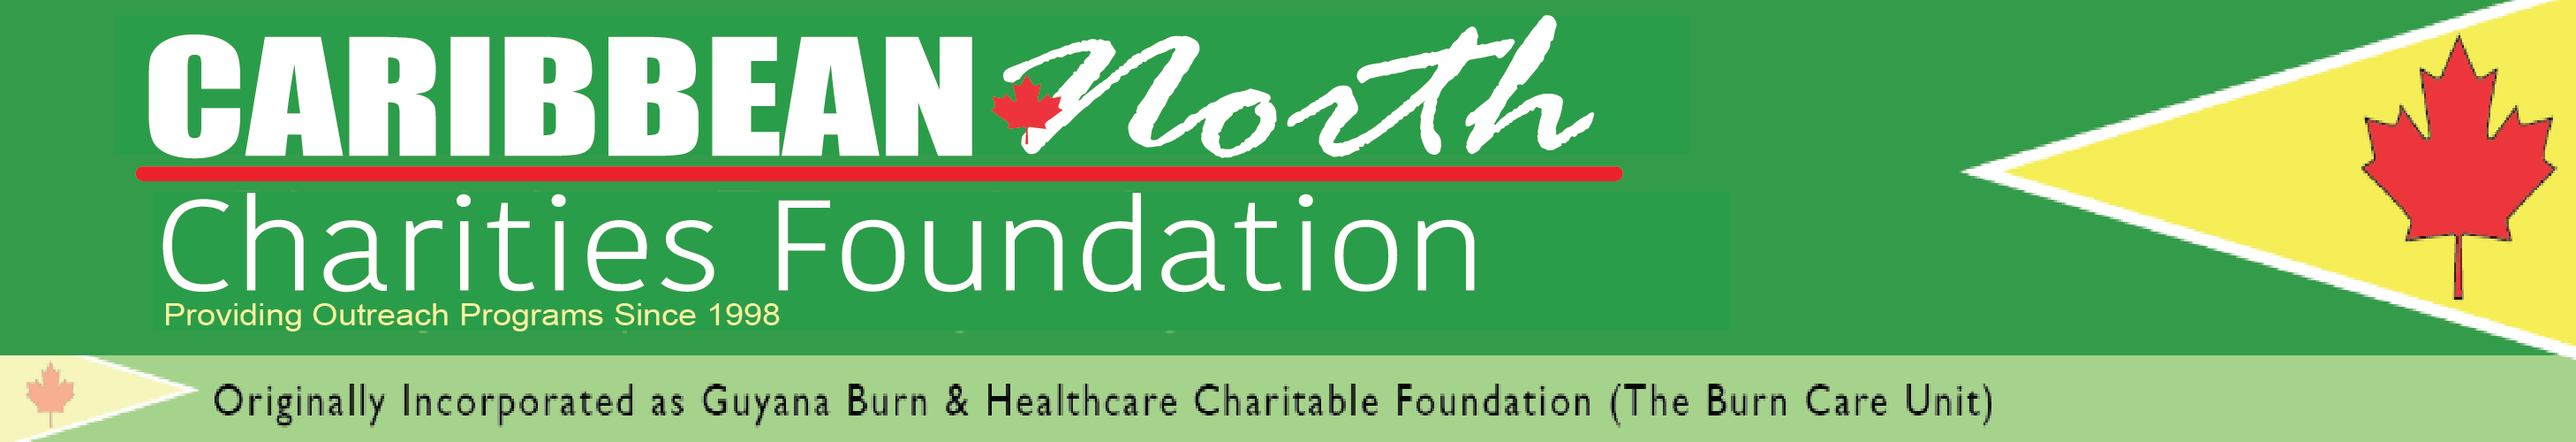 Caribbean North Charities Foundation